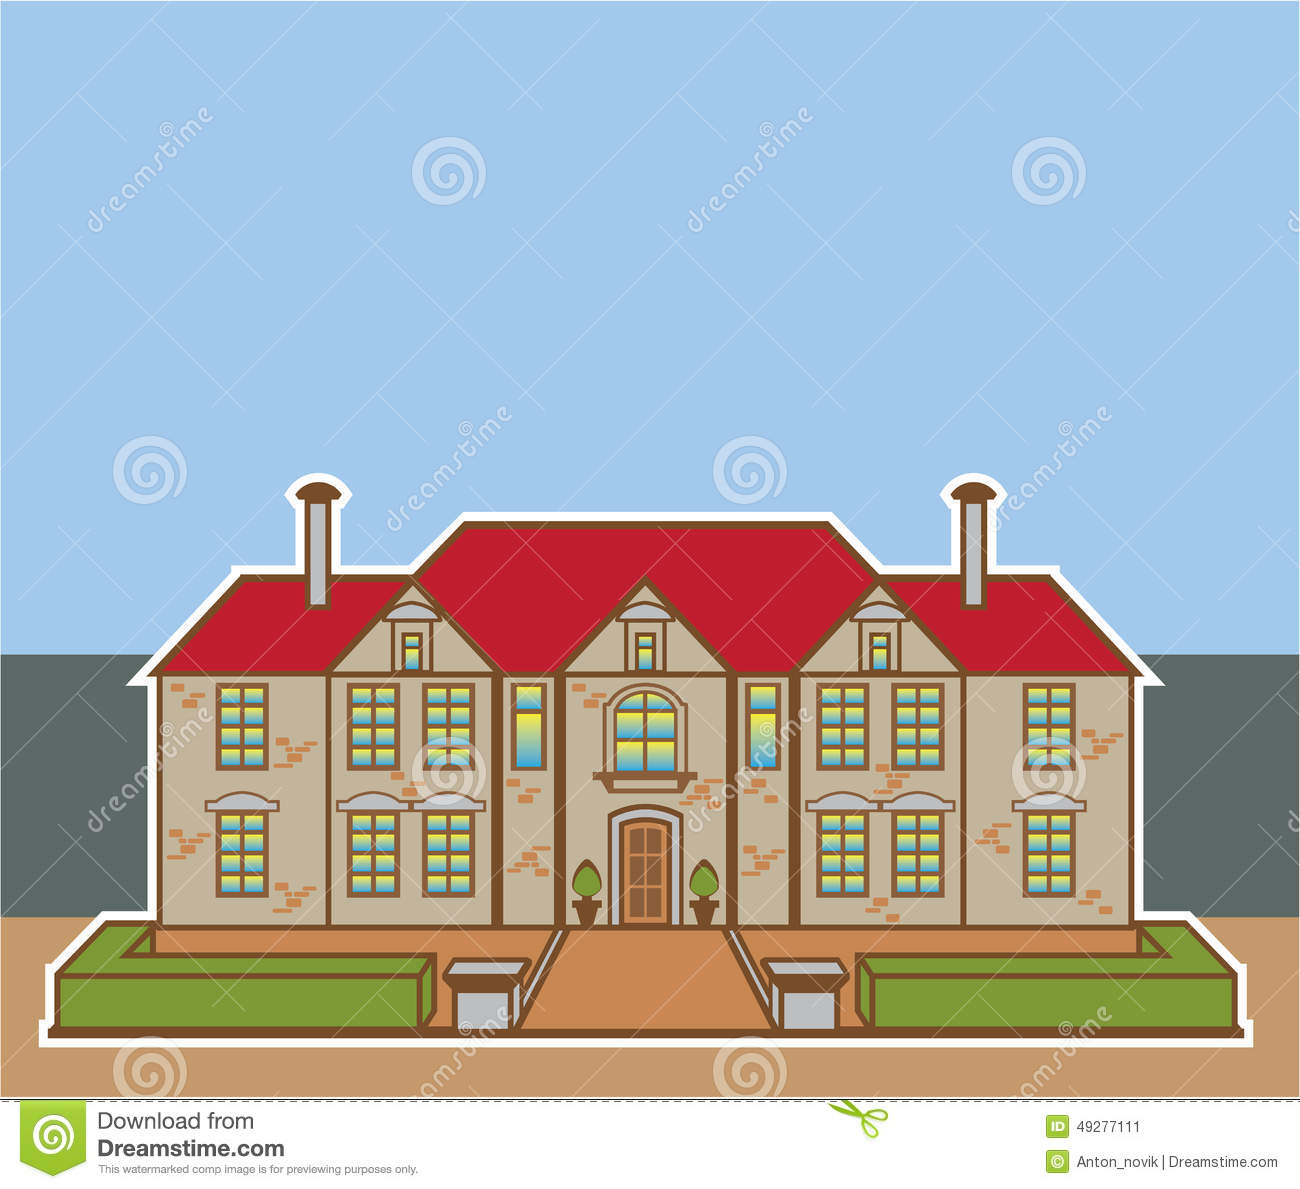 Mansions Clip Art, Mansion Free Clipart.